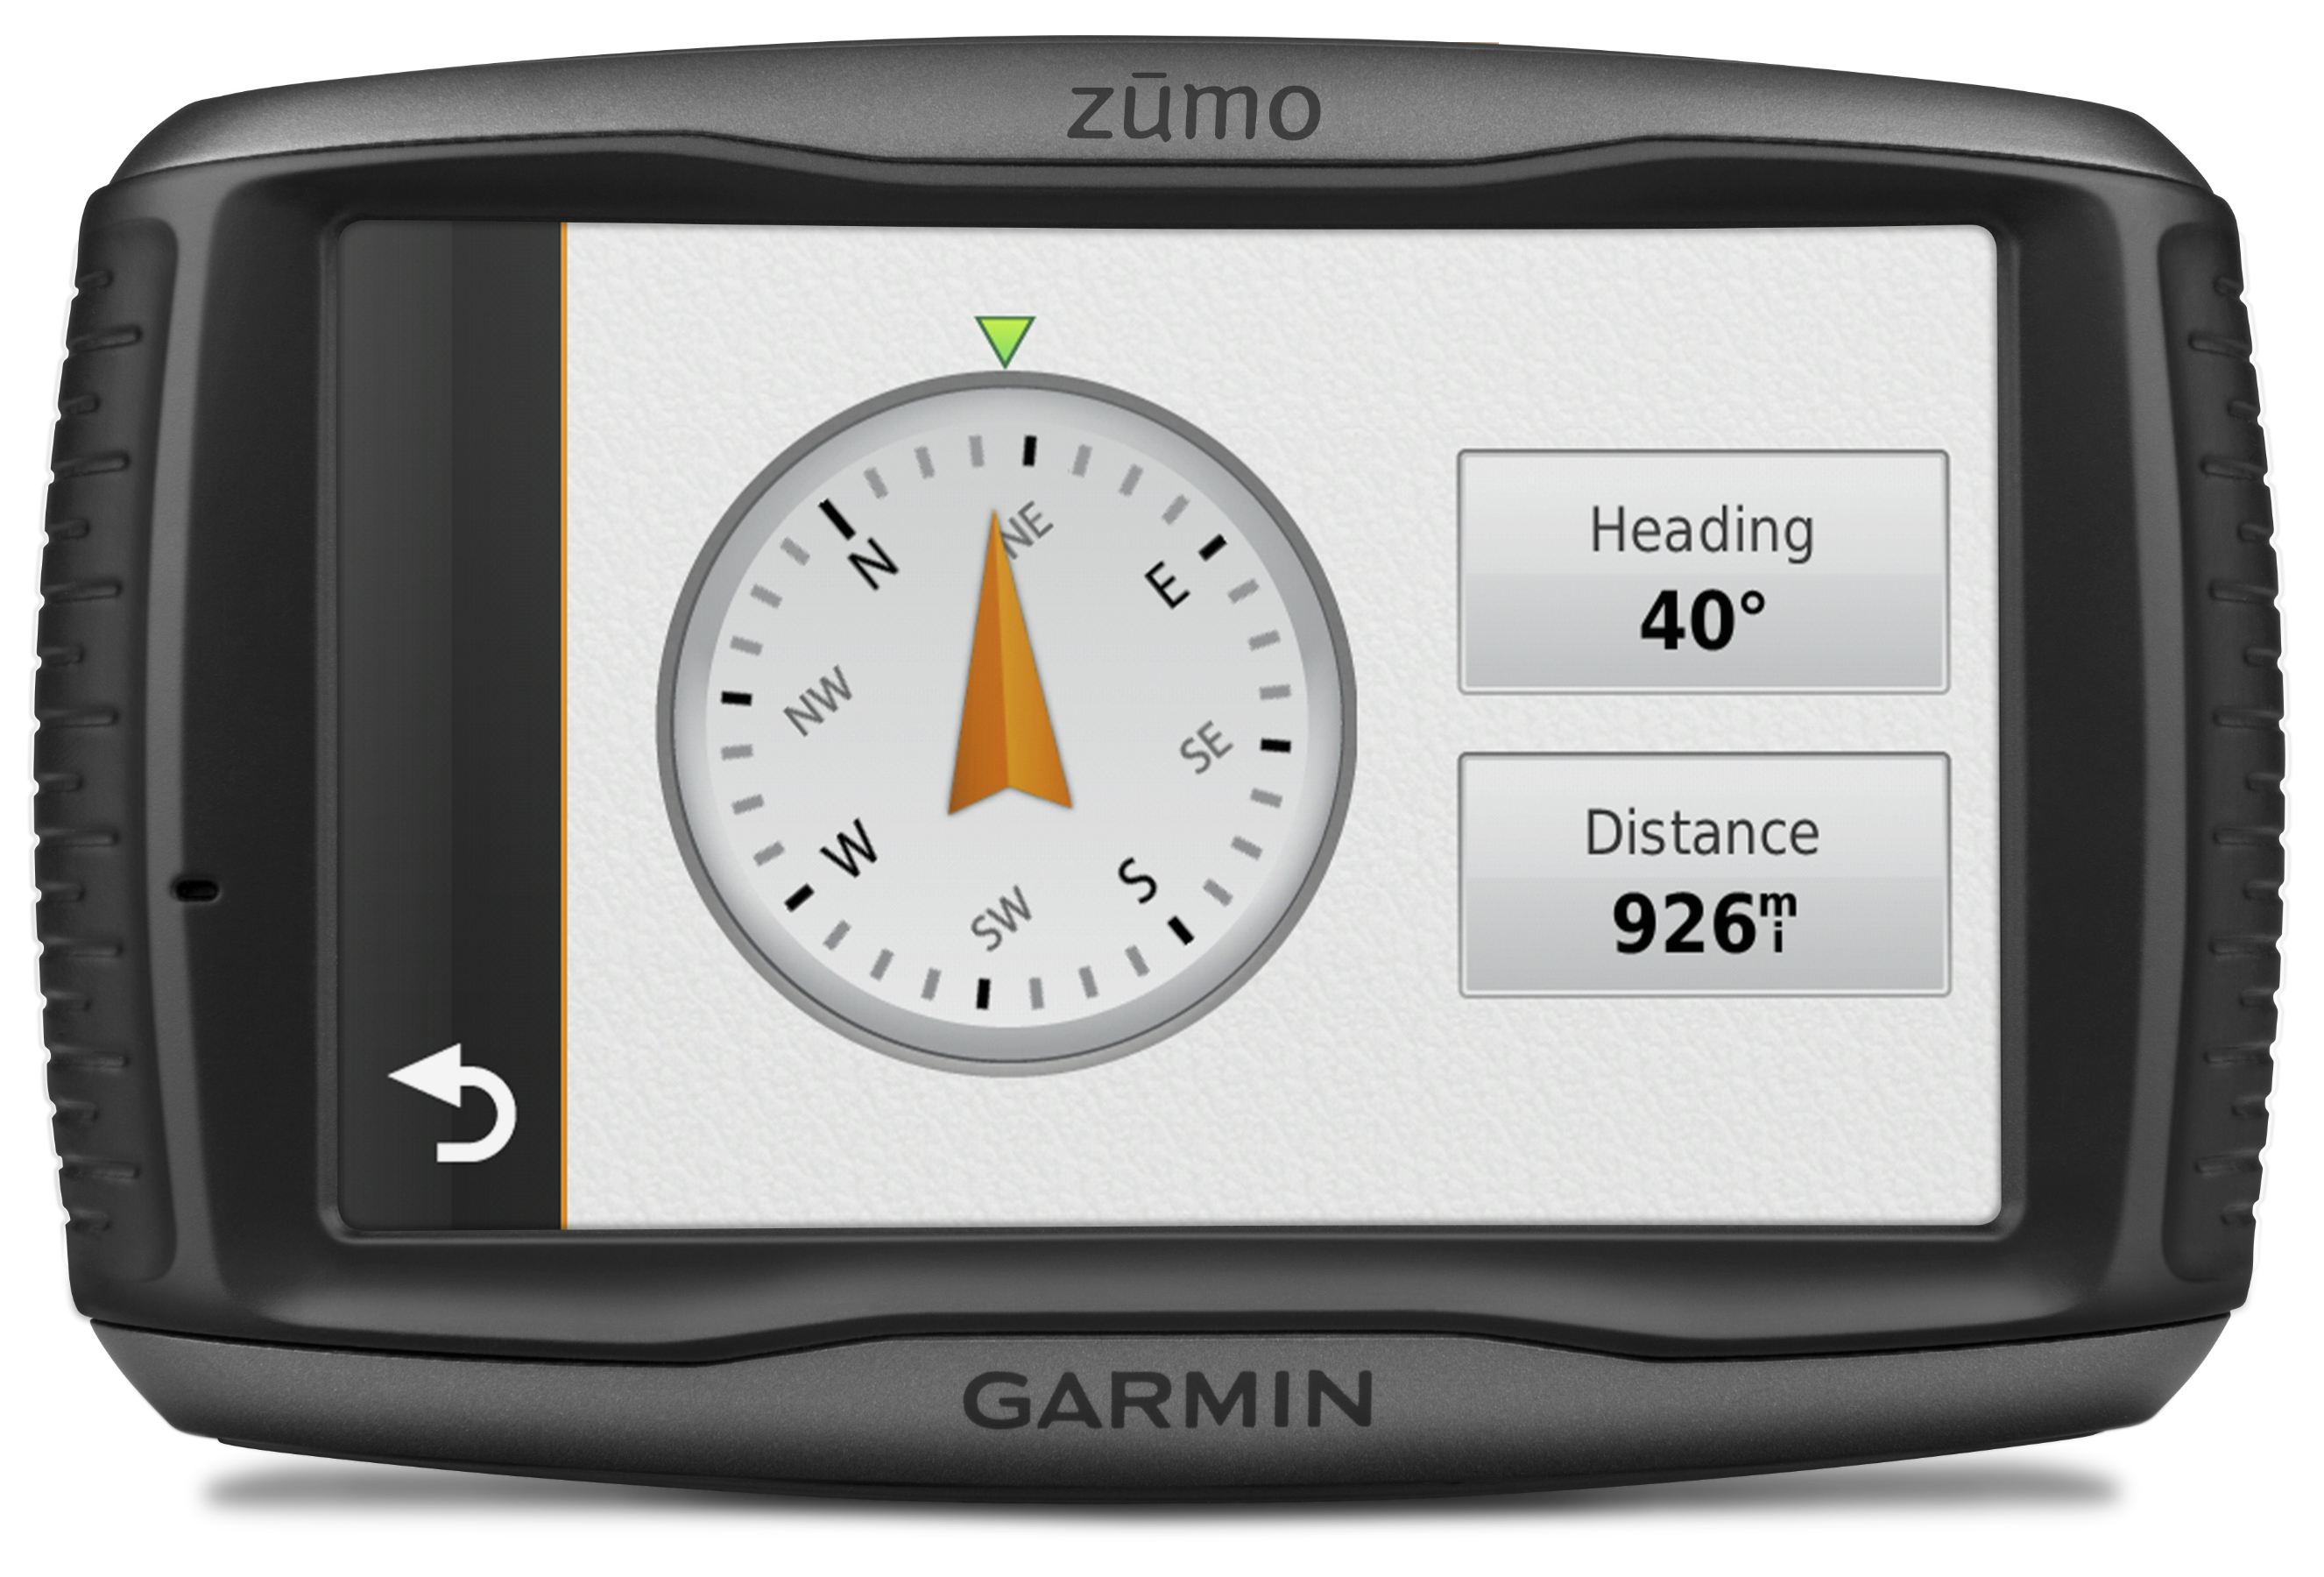 Garmin Zumo 590LM UK Europe Motorcycle GPS with Lifetime